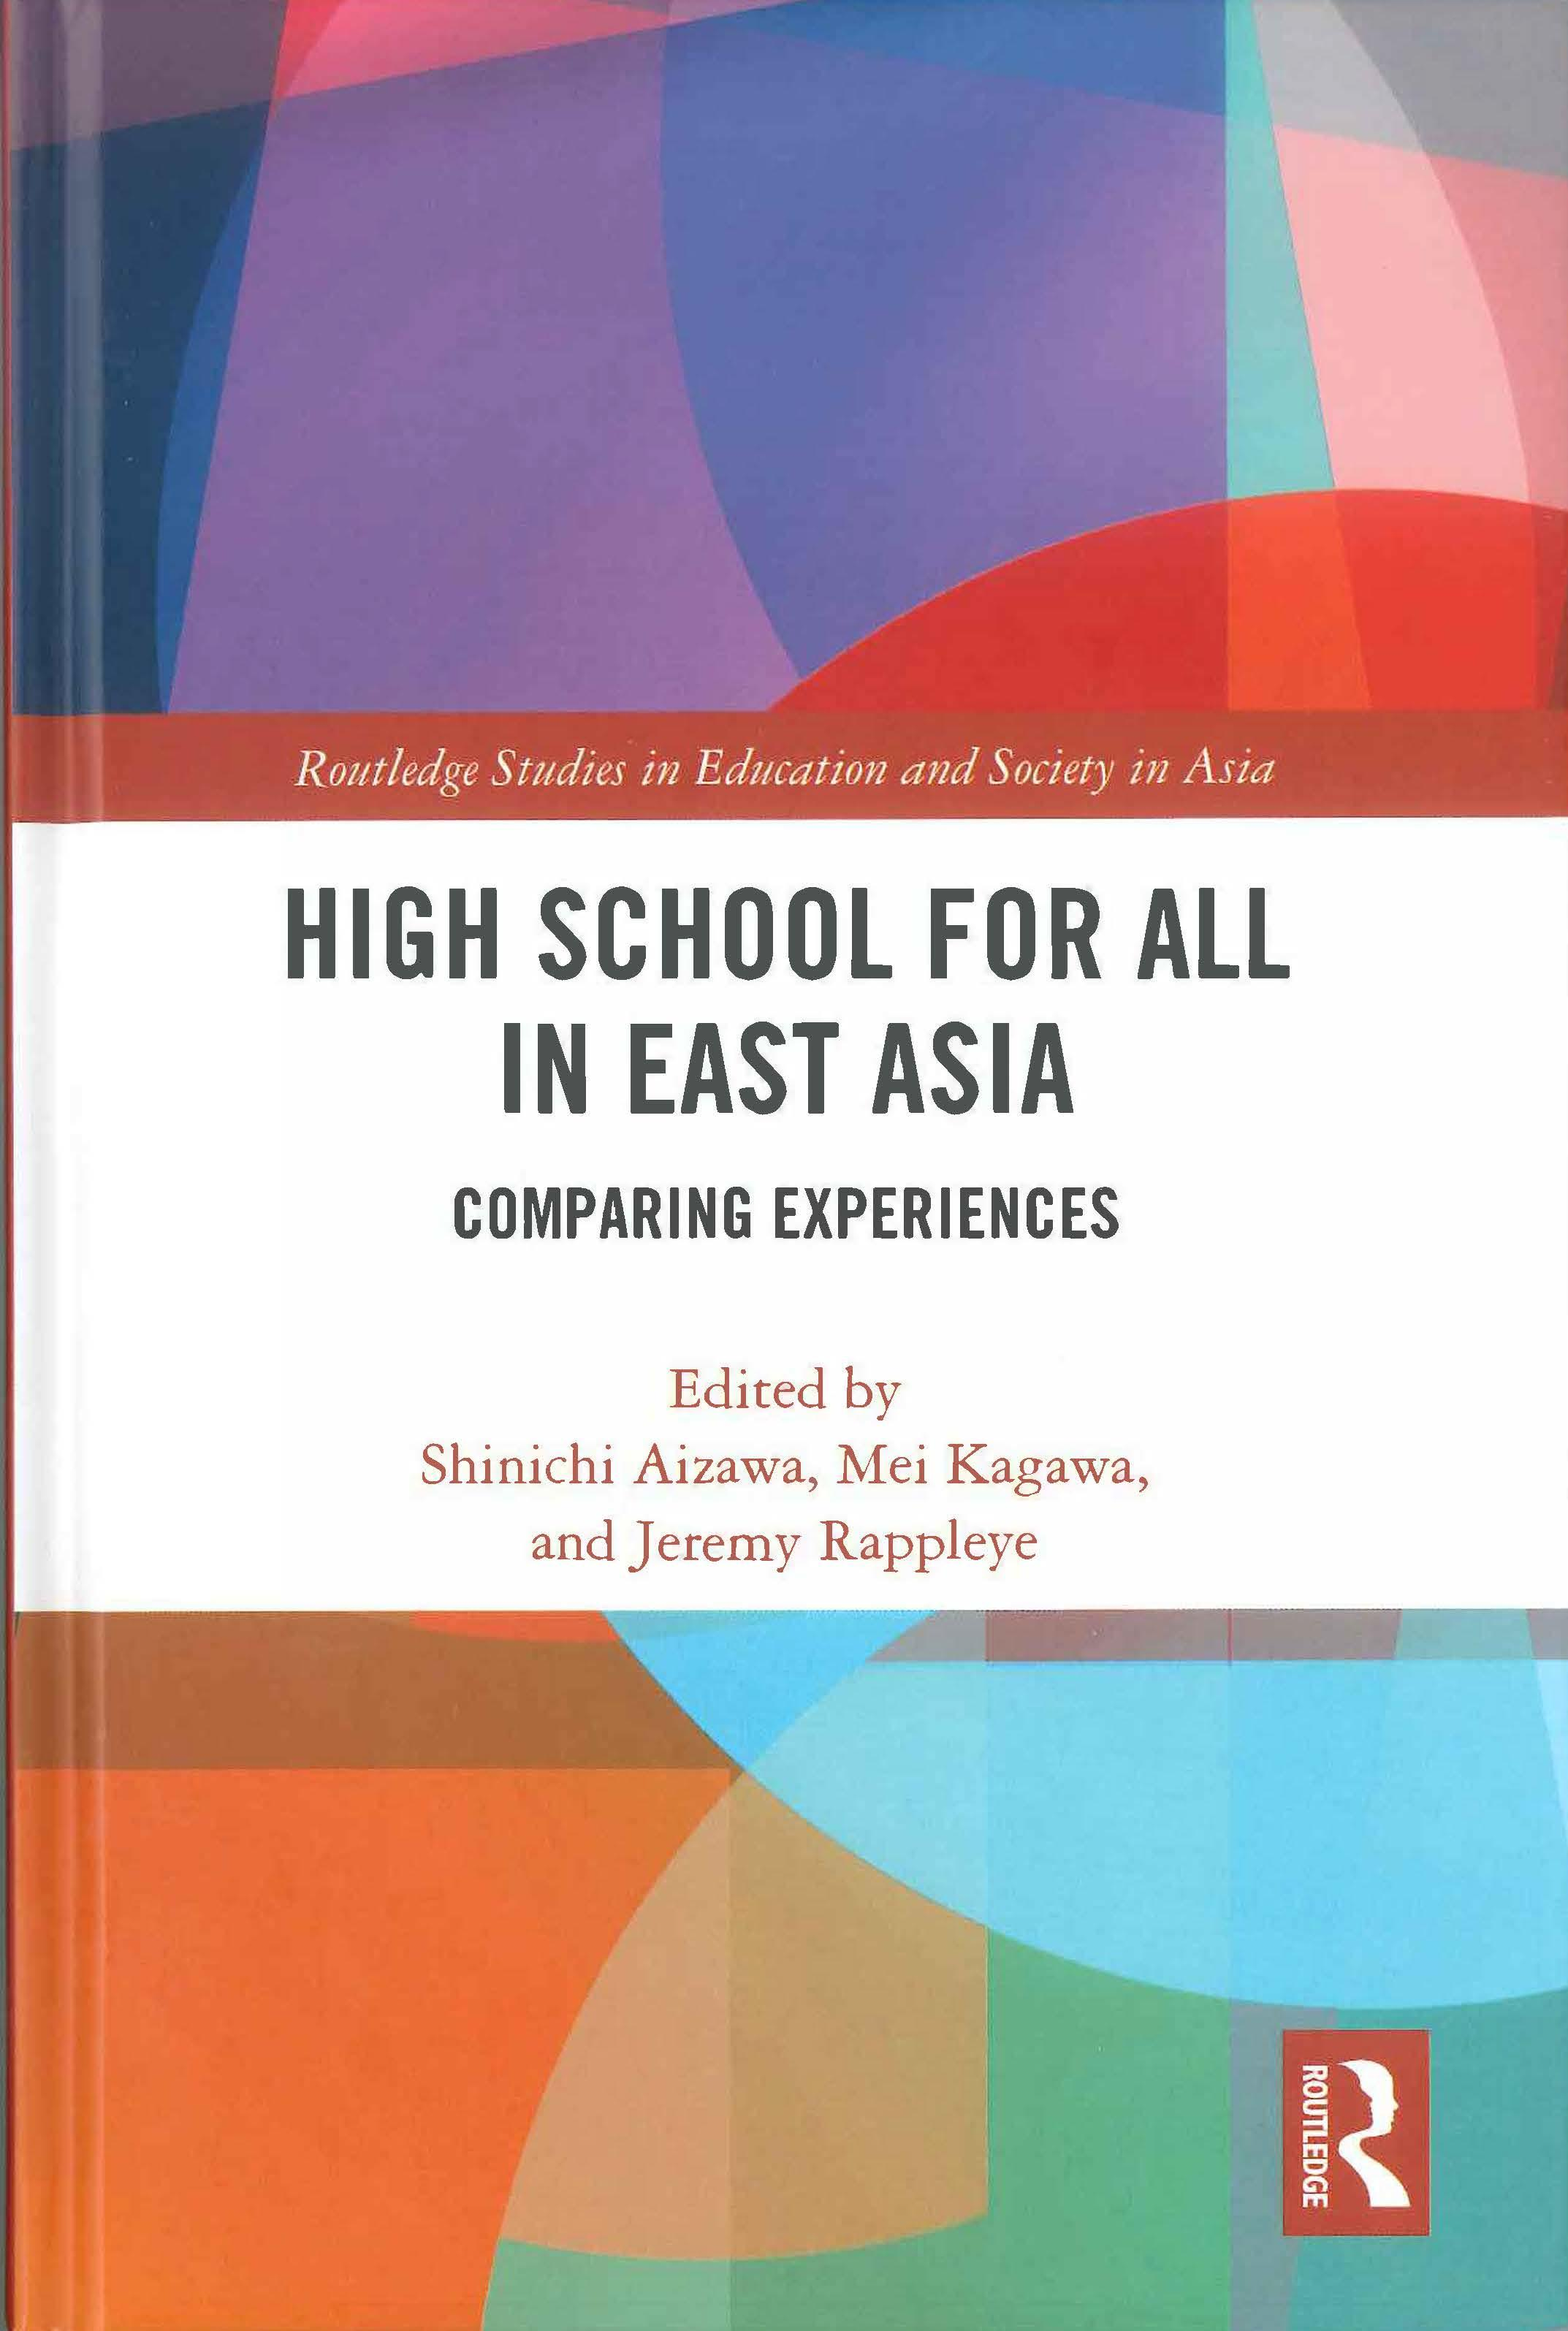 High School for All in East Asia